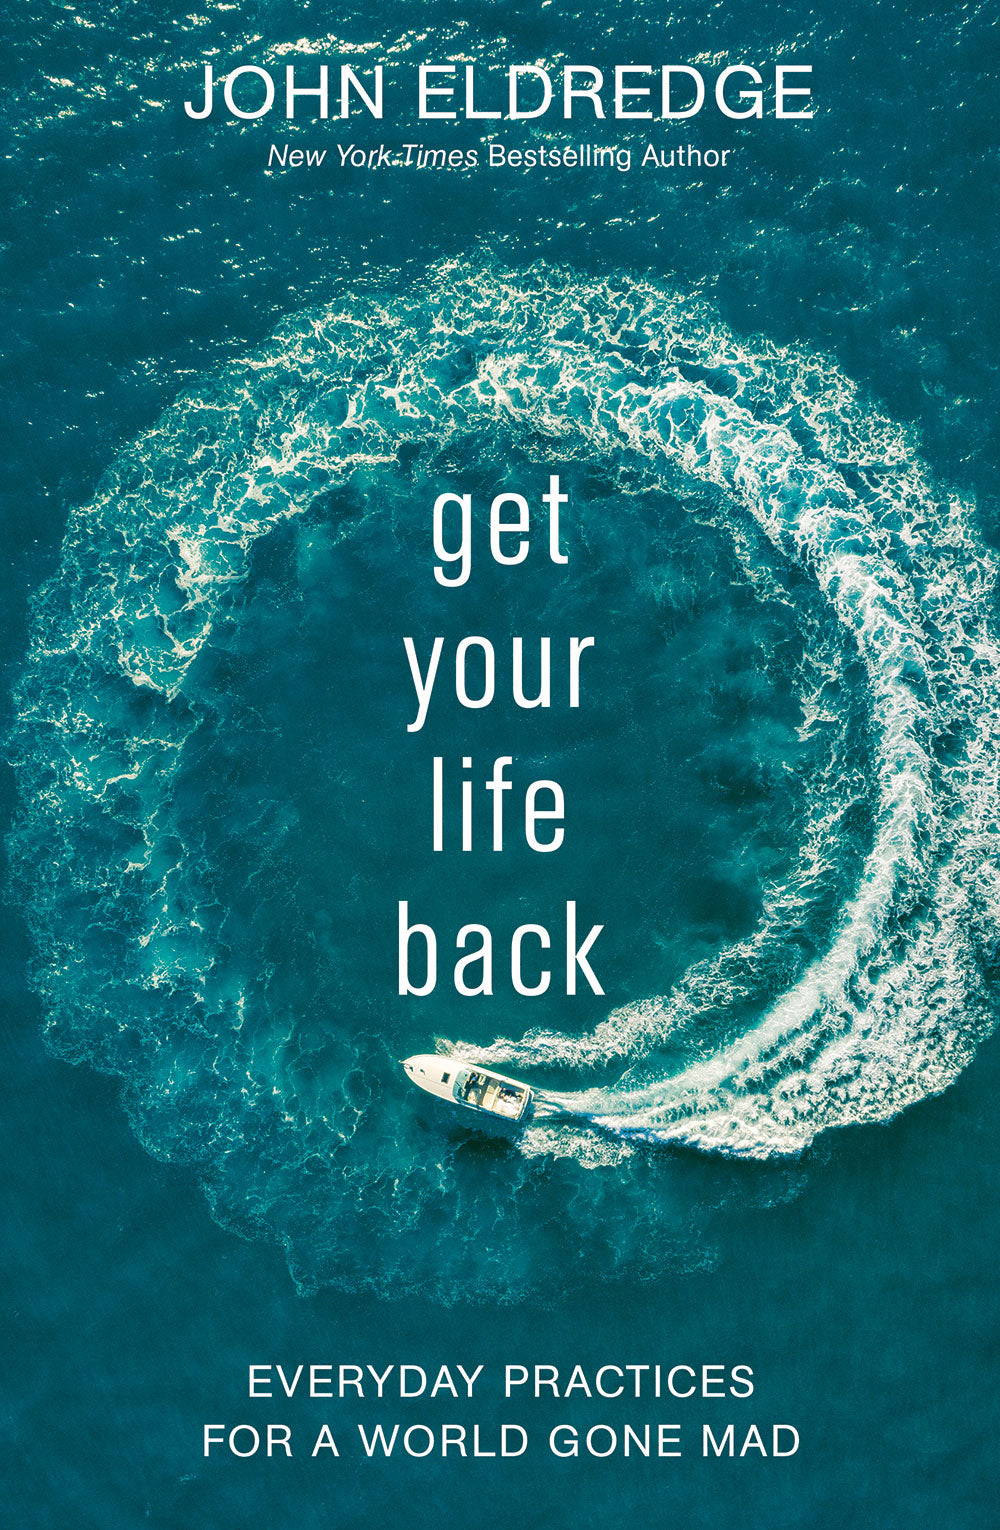 get your life back by john eldredge book cover